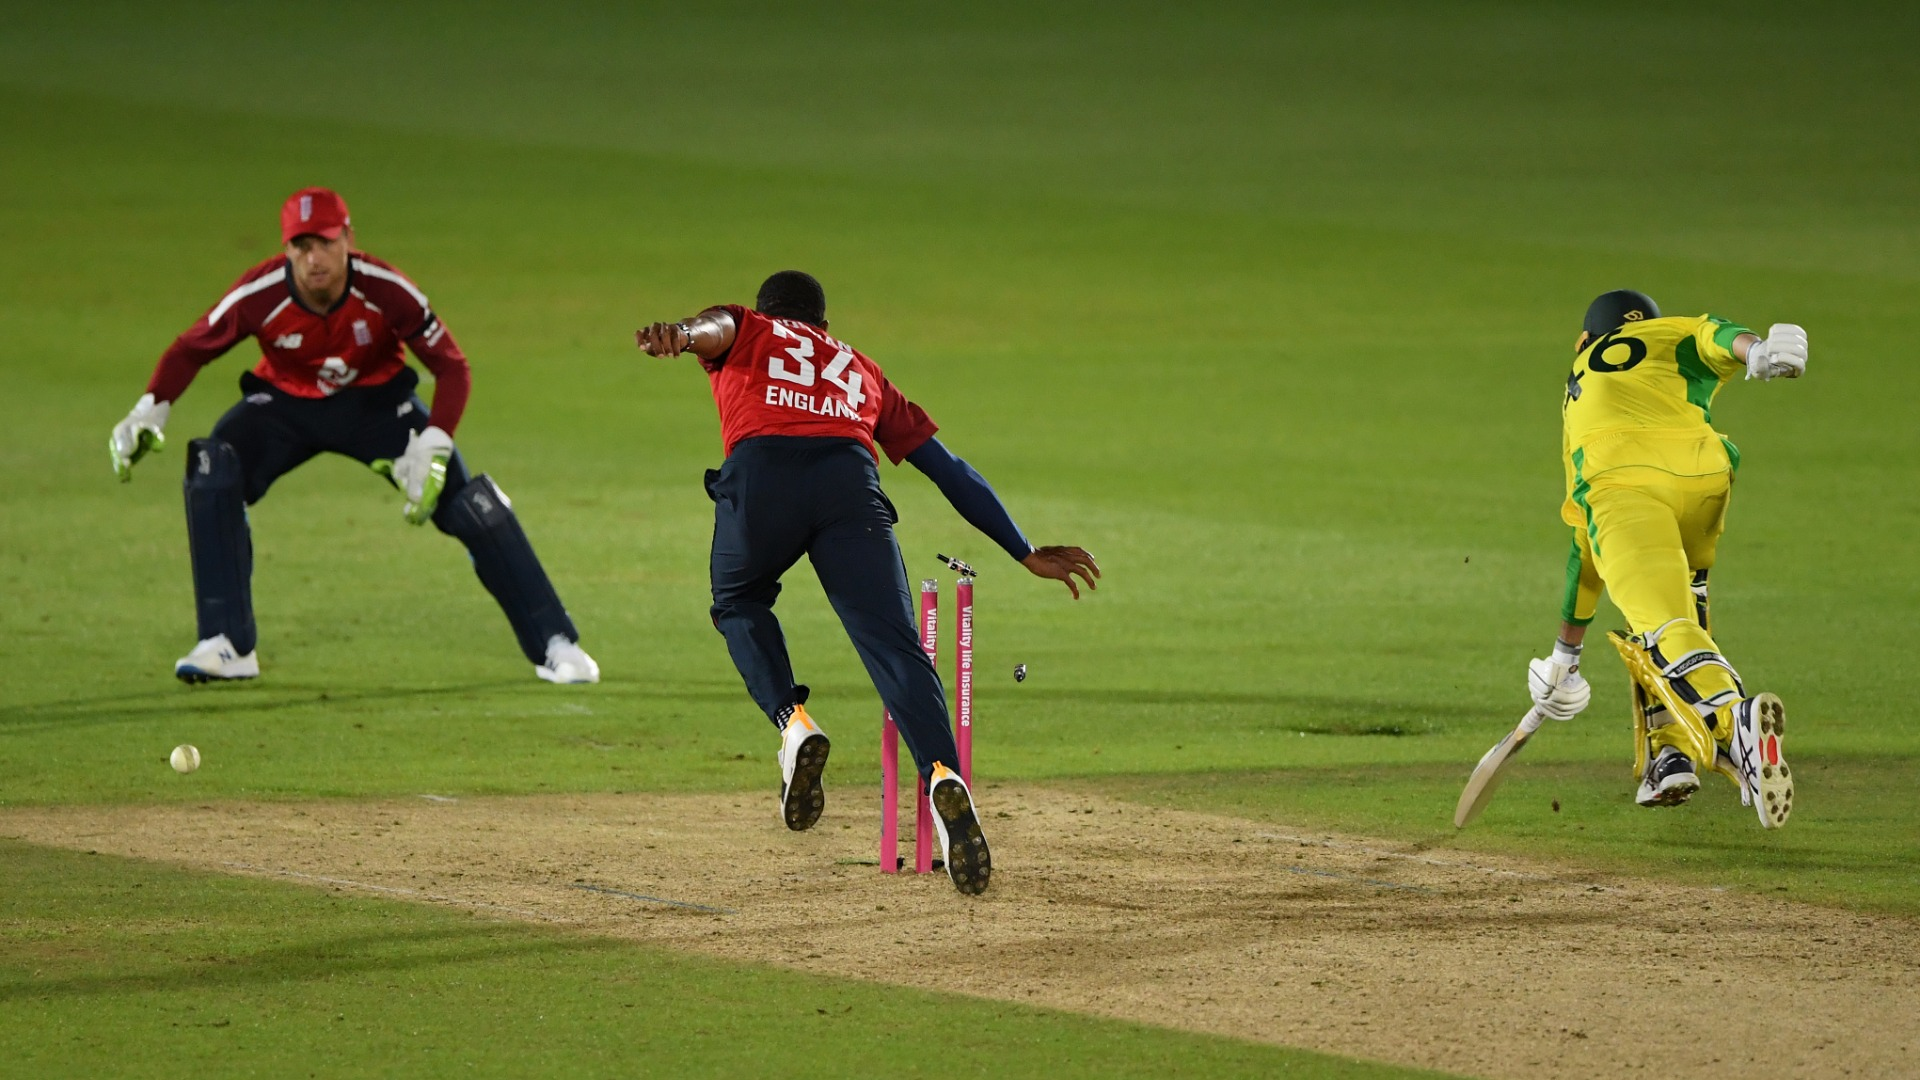 Australia collapse gives England tense opening T20 win